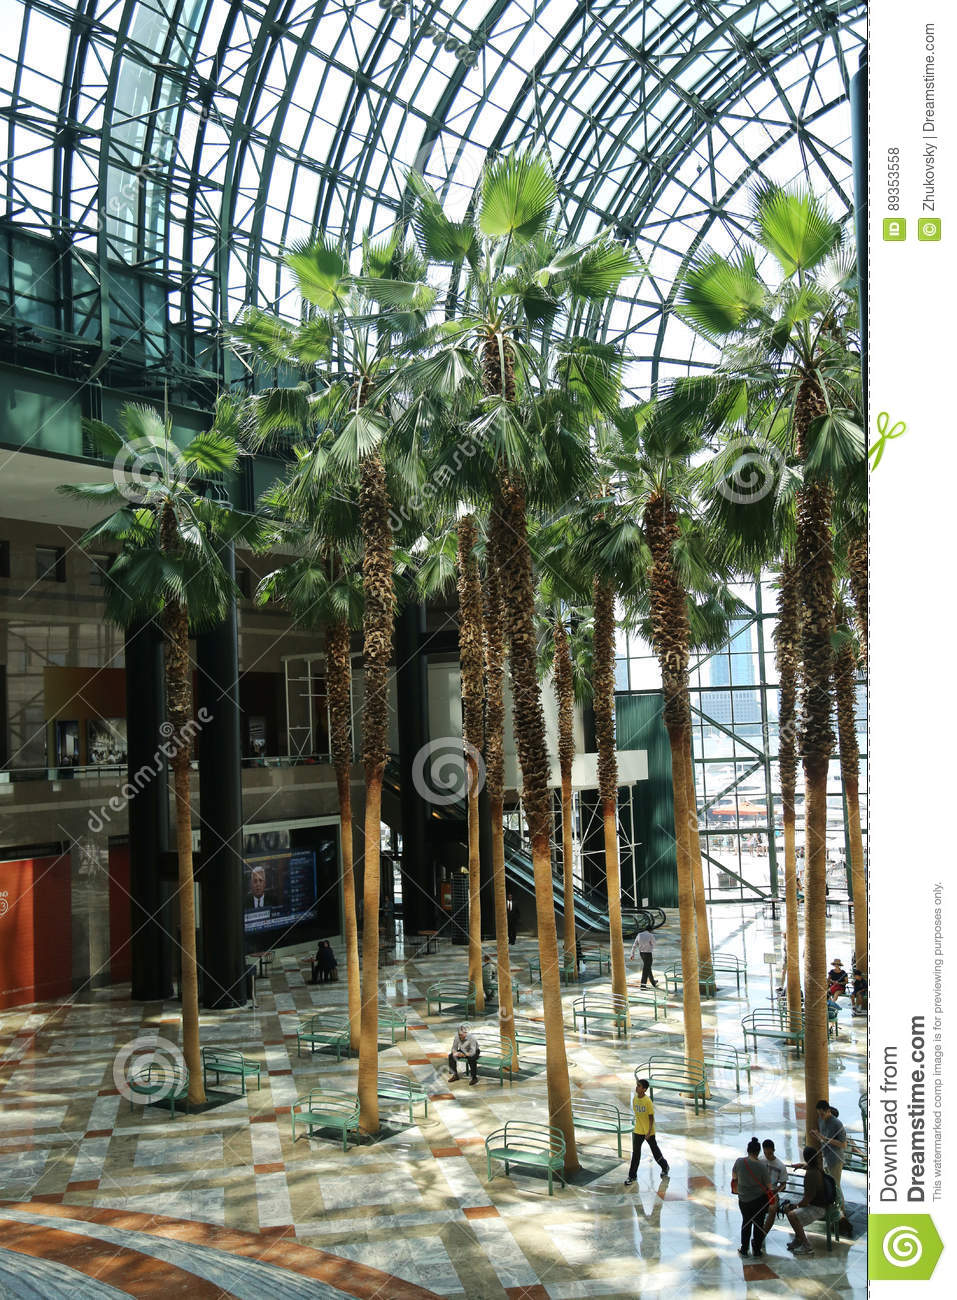 Winter Garden in World Financial Center located in Lower Manhattan